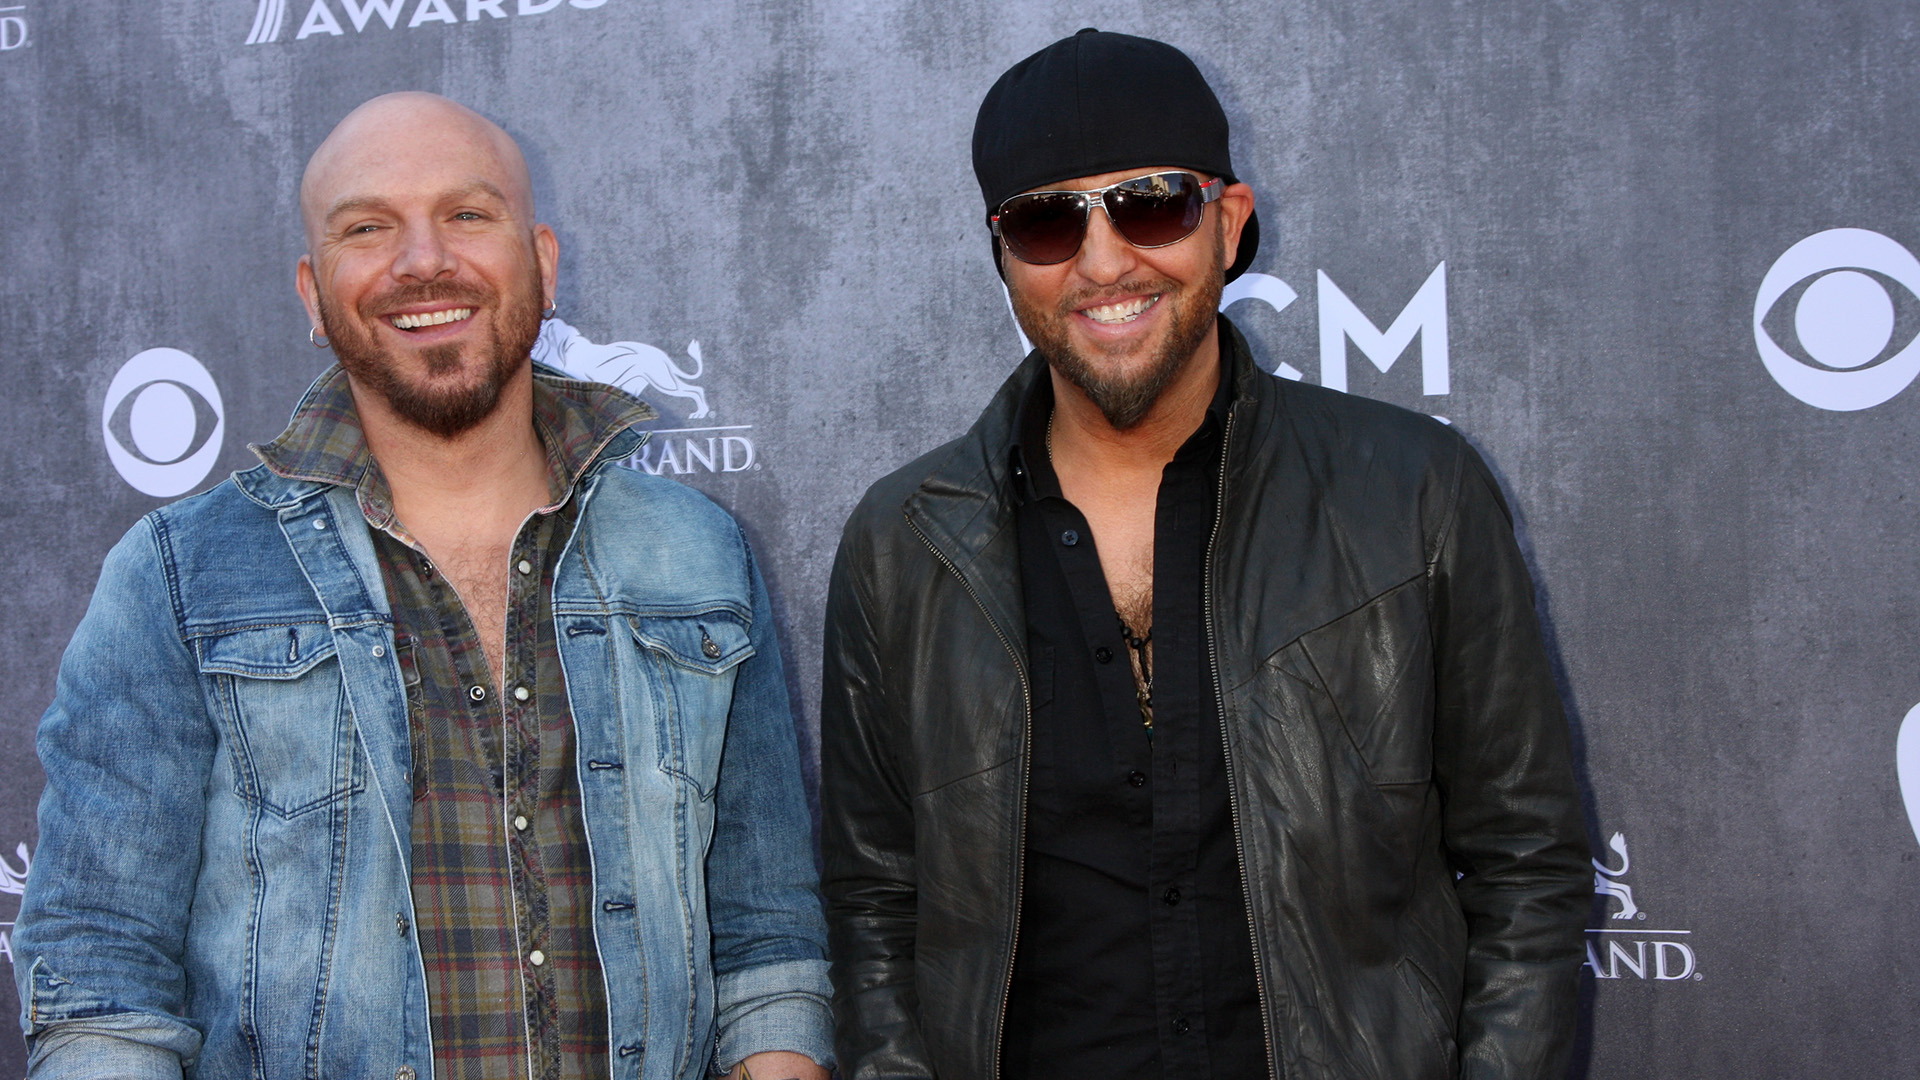 LoCash were all smiles at the ACM Awards in 2014.